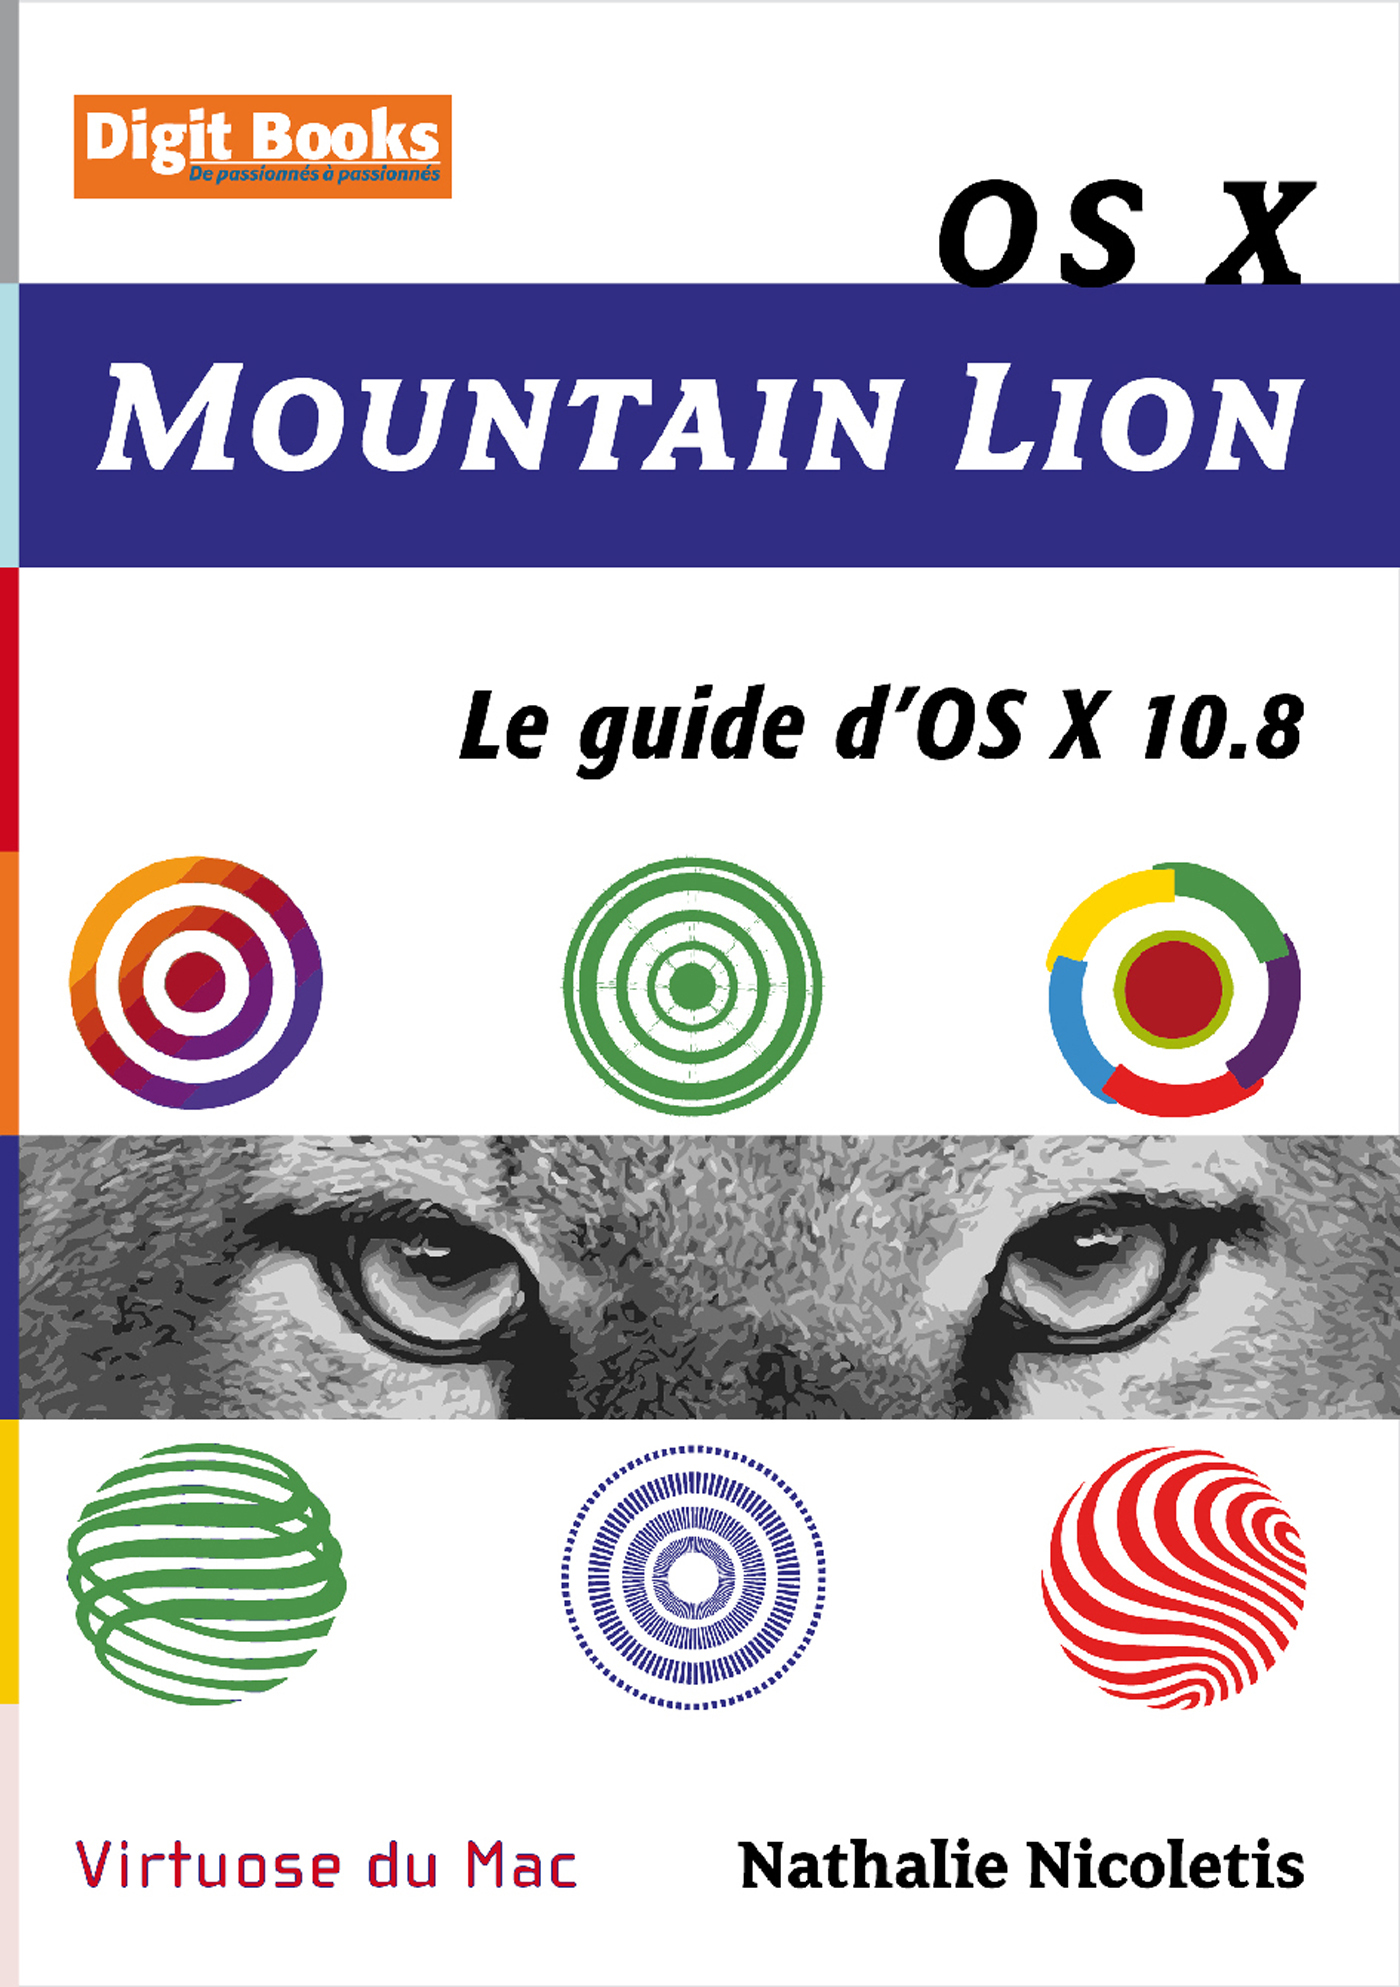 OS X MOUTAIN LION. LE GUIDE D'OS 10.8